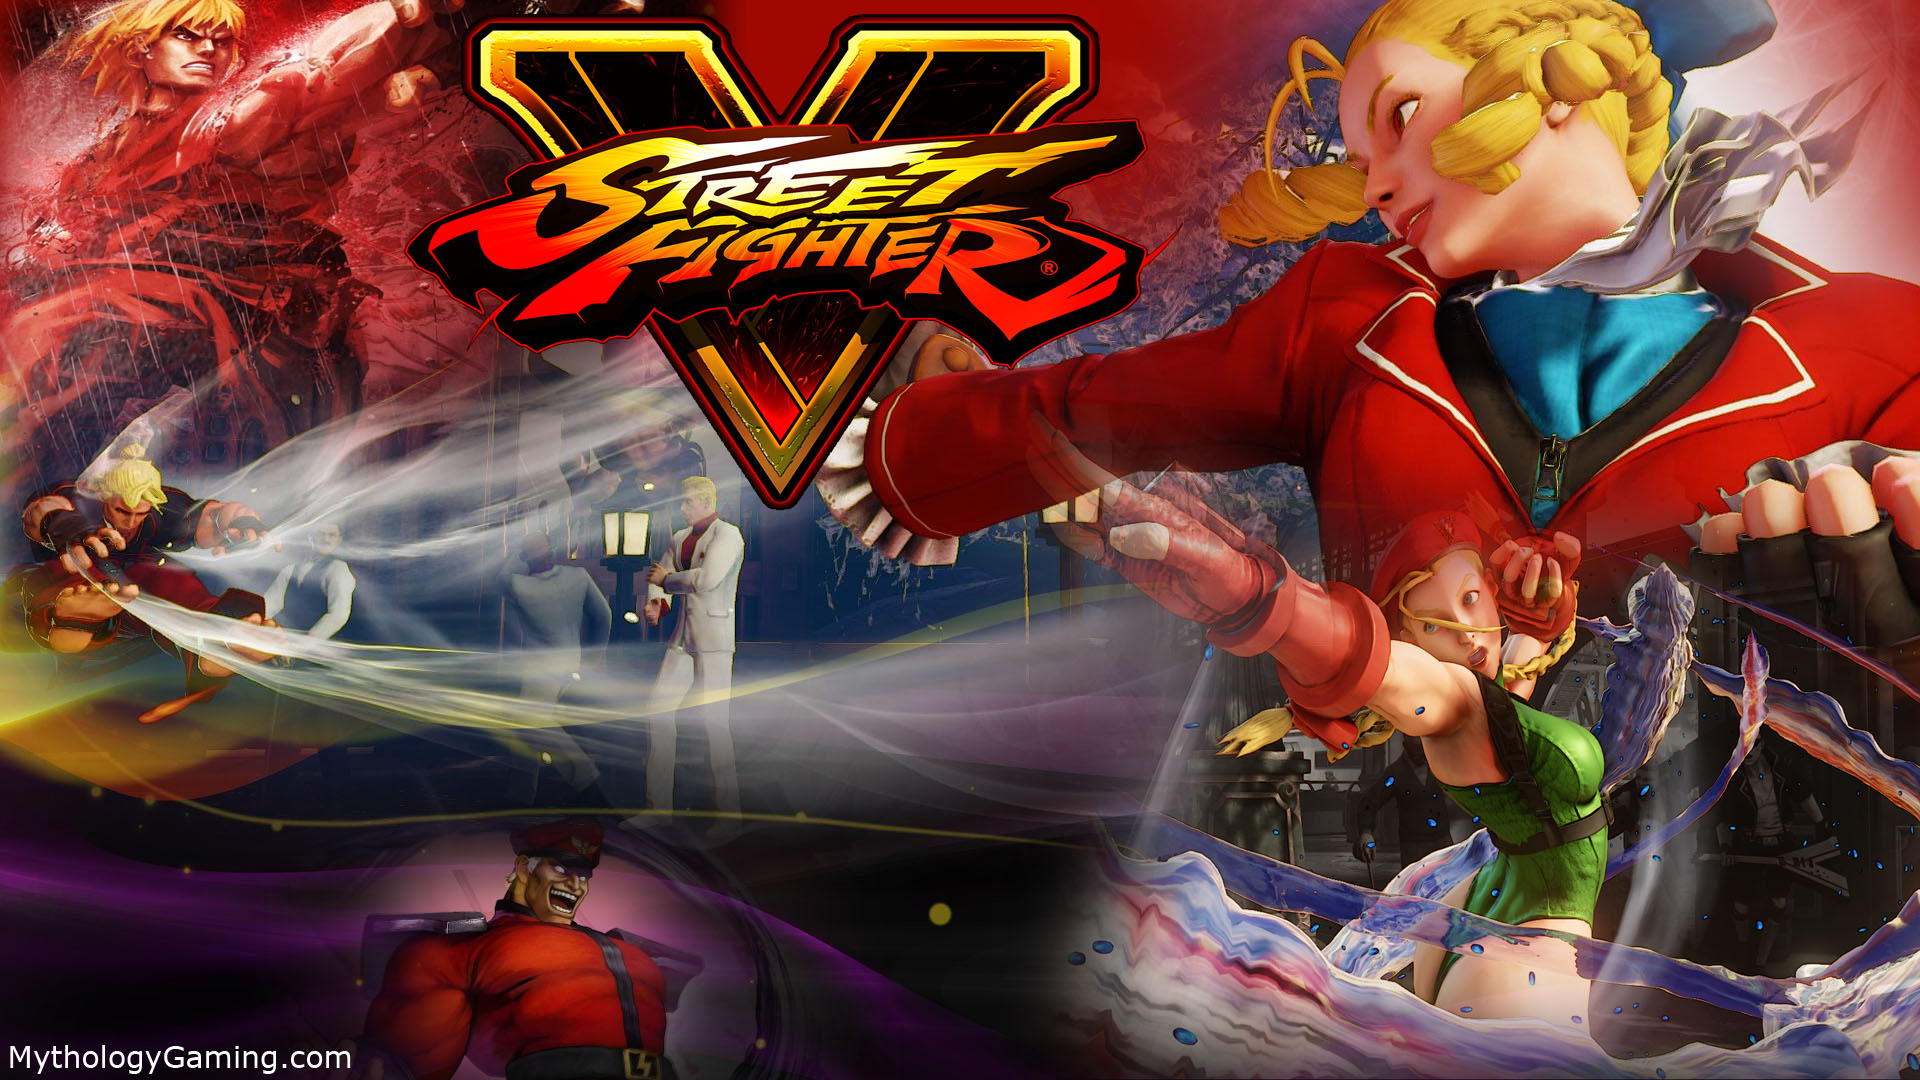 Free Download New Street Fighter 5 Wallpaper Mythology Gaming